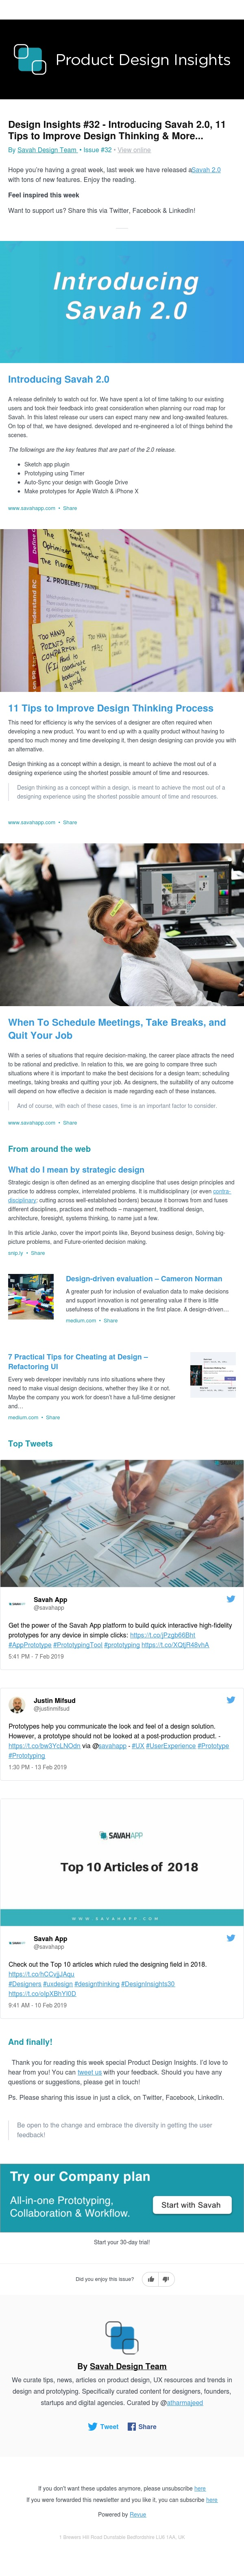 Design Insights #32 - Introducing Savah 2.0, 11 Tips to Improve Design Thinking & More...